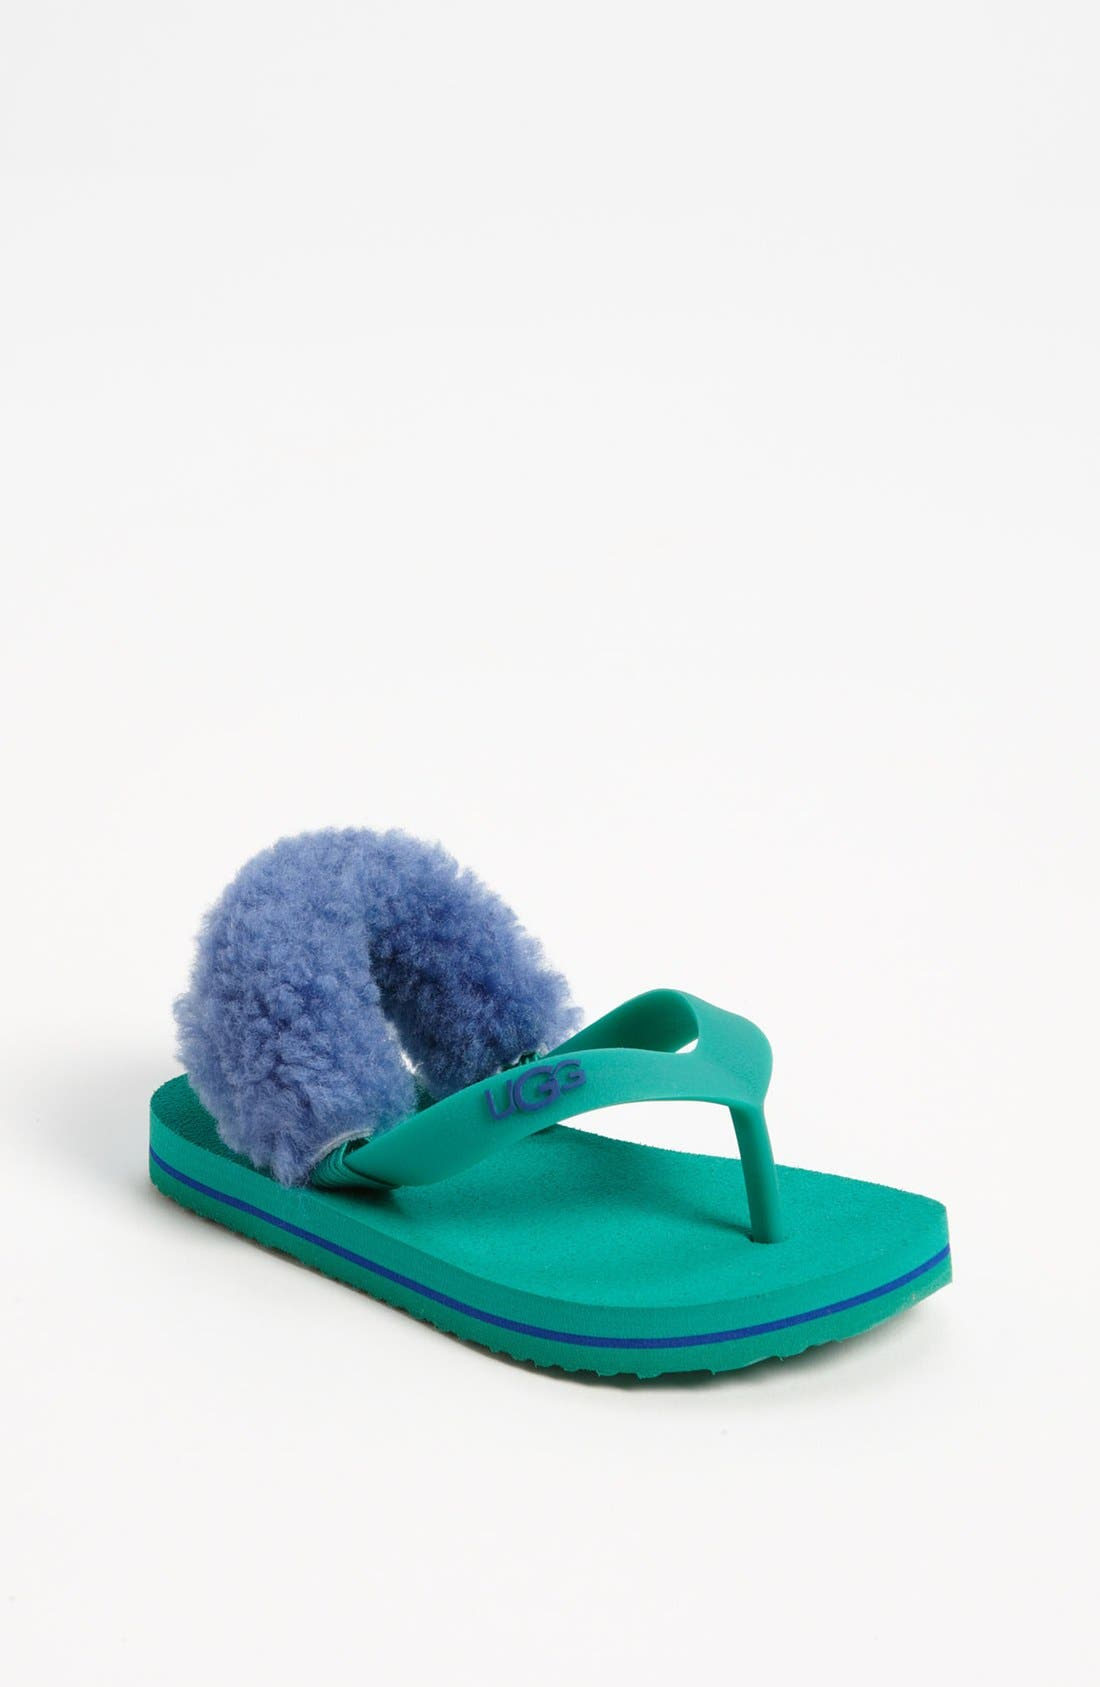 Alternate Image 1 Selected - UGG® 'Yia Yia' Sandal (Baby & Walker)